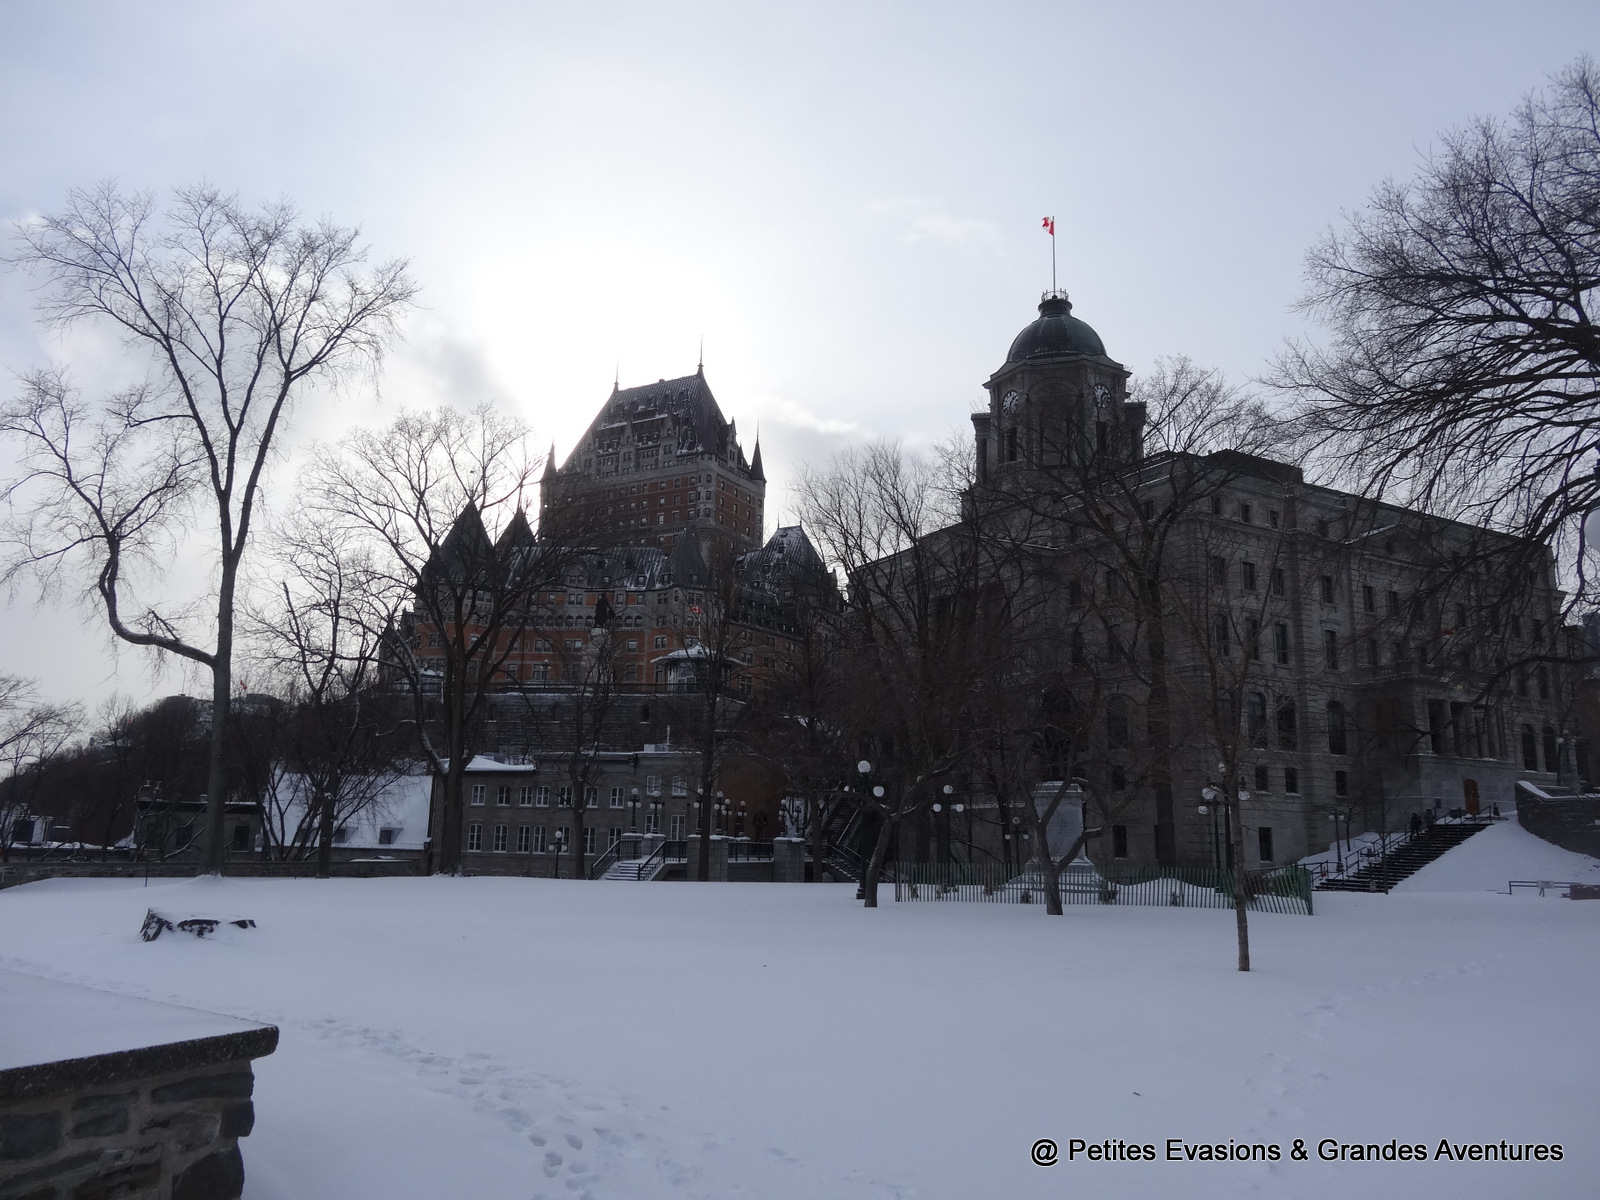 Le château de Frontenac et l'édifice Louis-S.-St-Laurent depuis le Montmorency Park National Historic Site